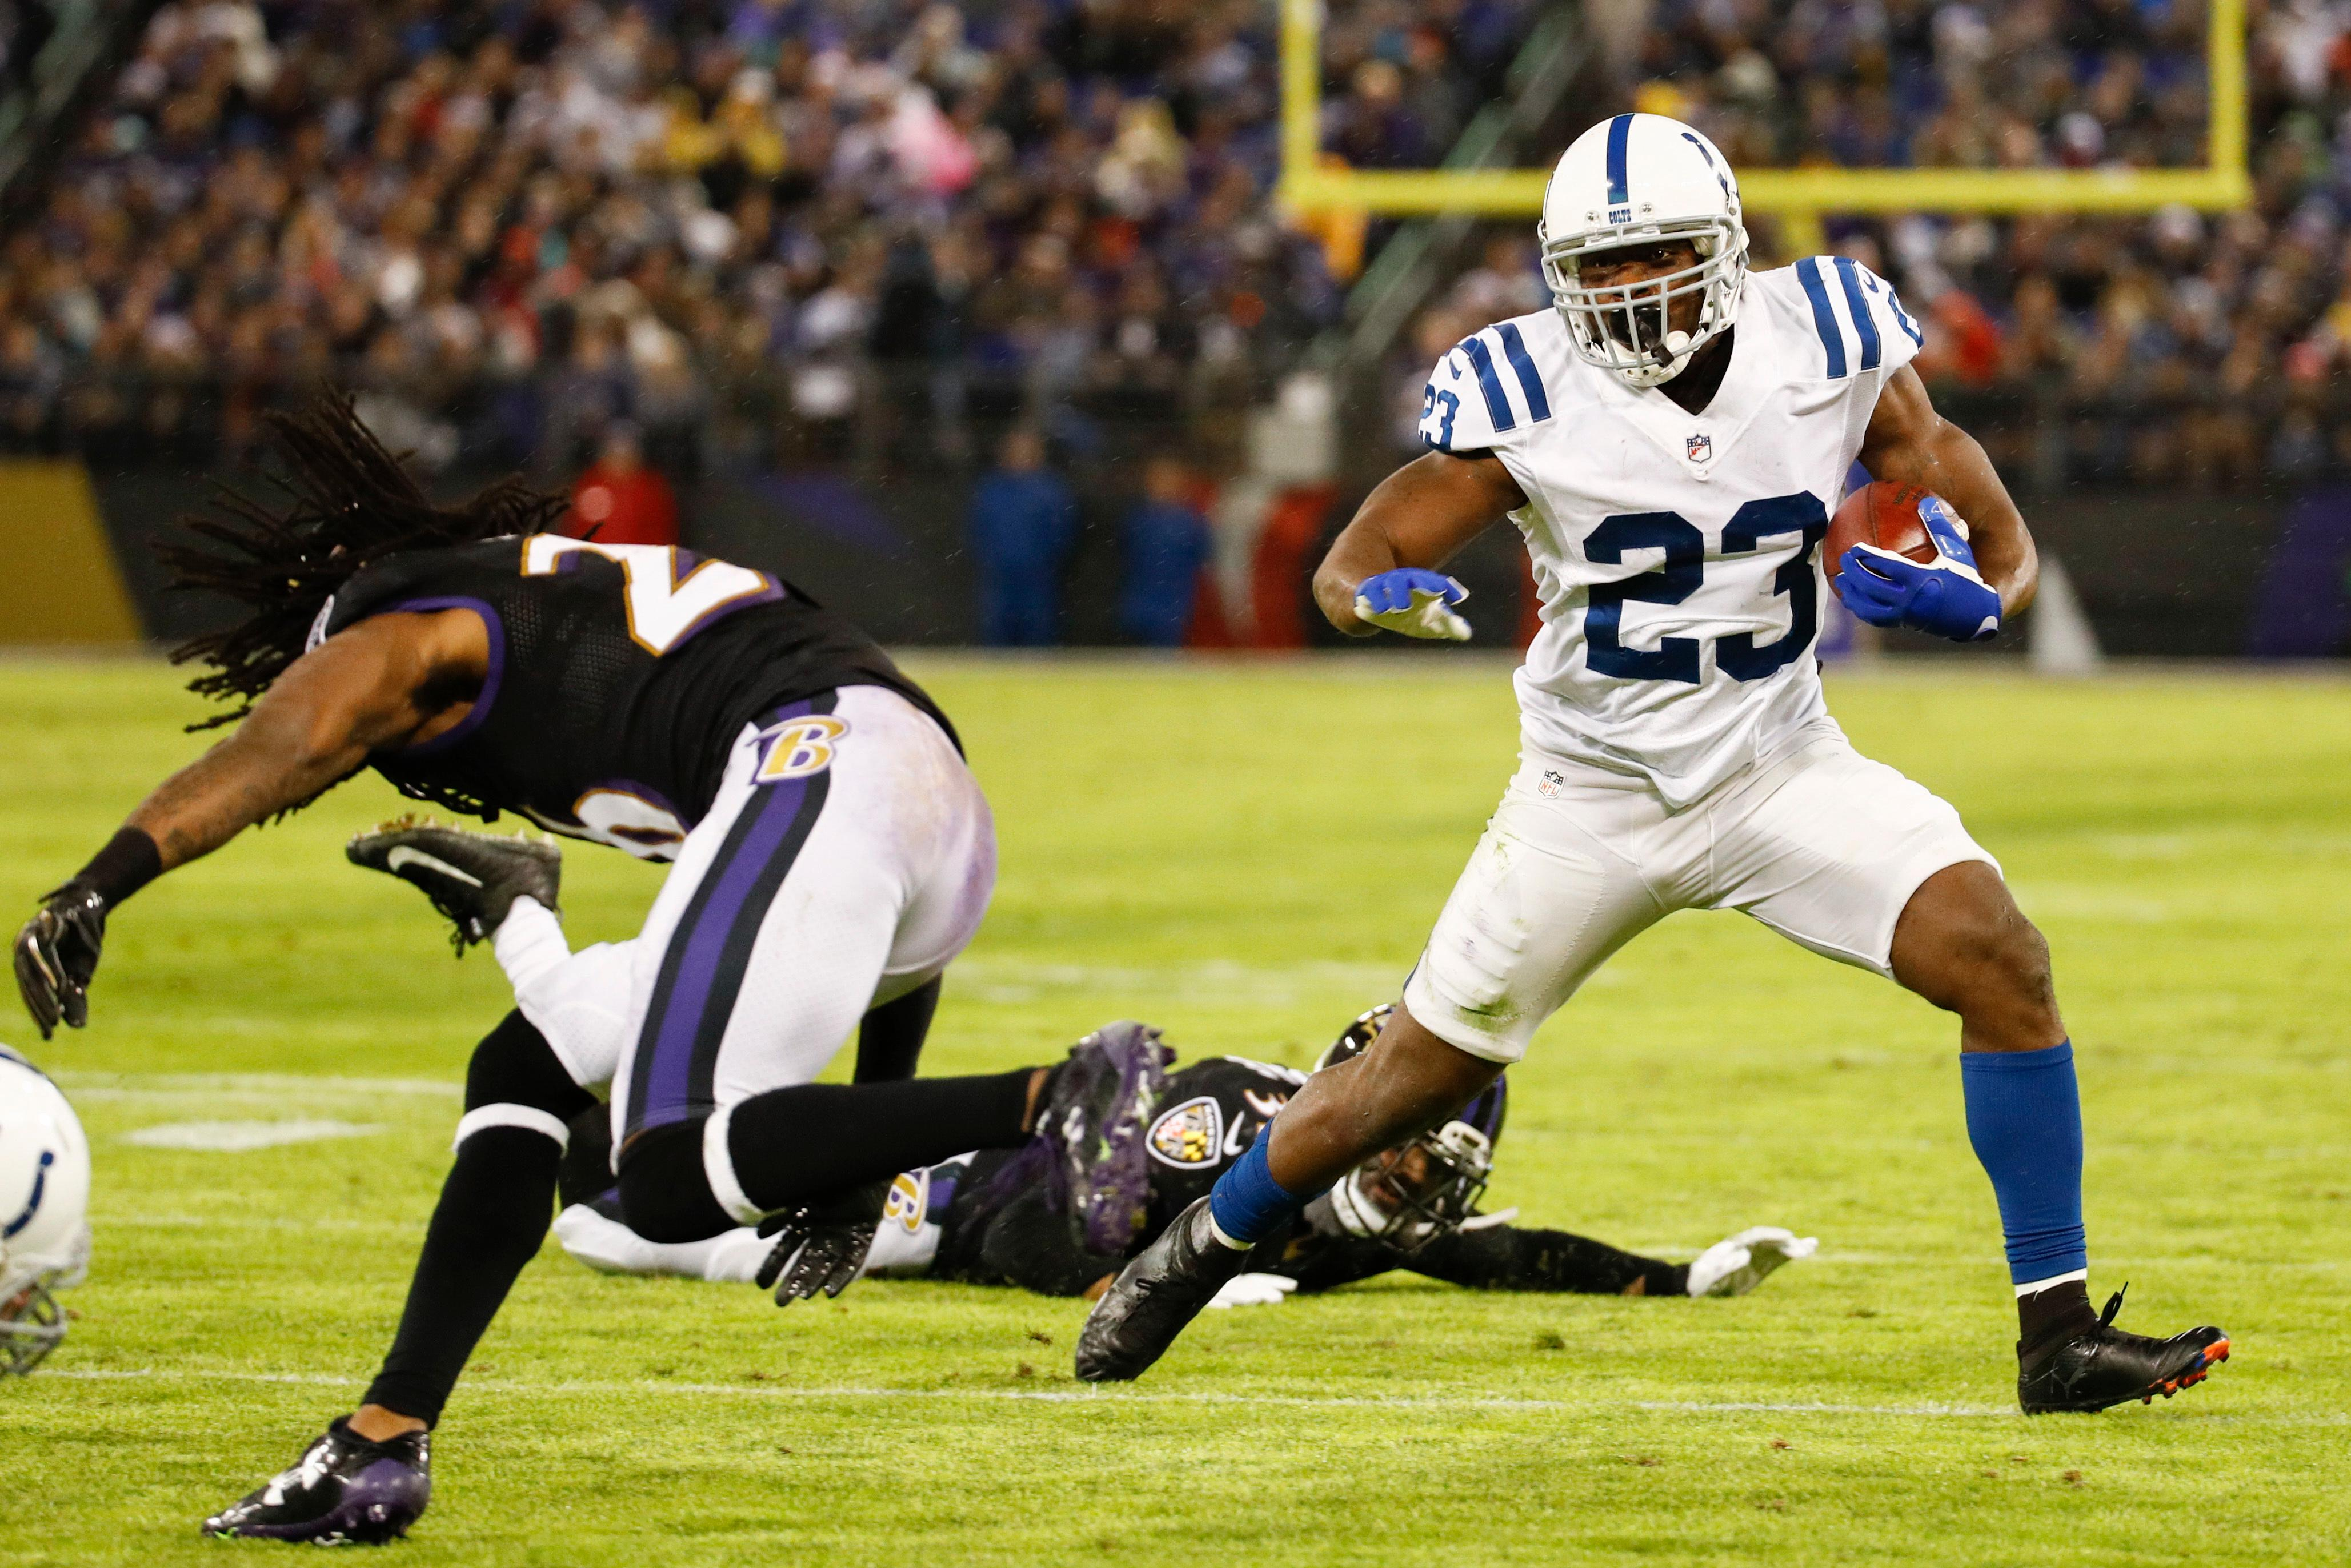 Indianapolis Colts running back Frank Gore (23) runs for a touchdown during the first half of an NFL football game against Baltimore Ravens in Baltimore, Saturday, Dec 23, 2017. (AP Photo/Patrick Semansky)